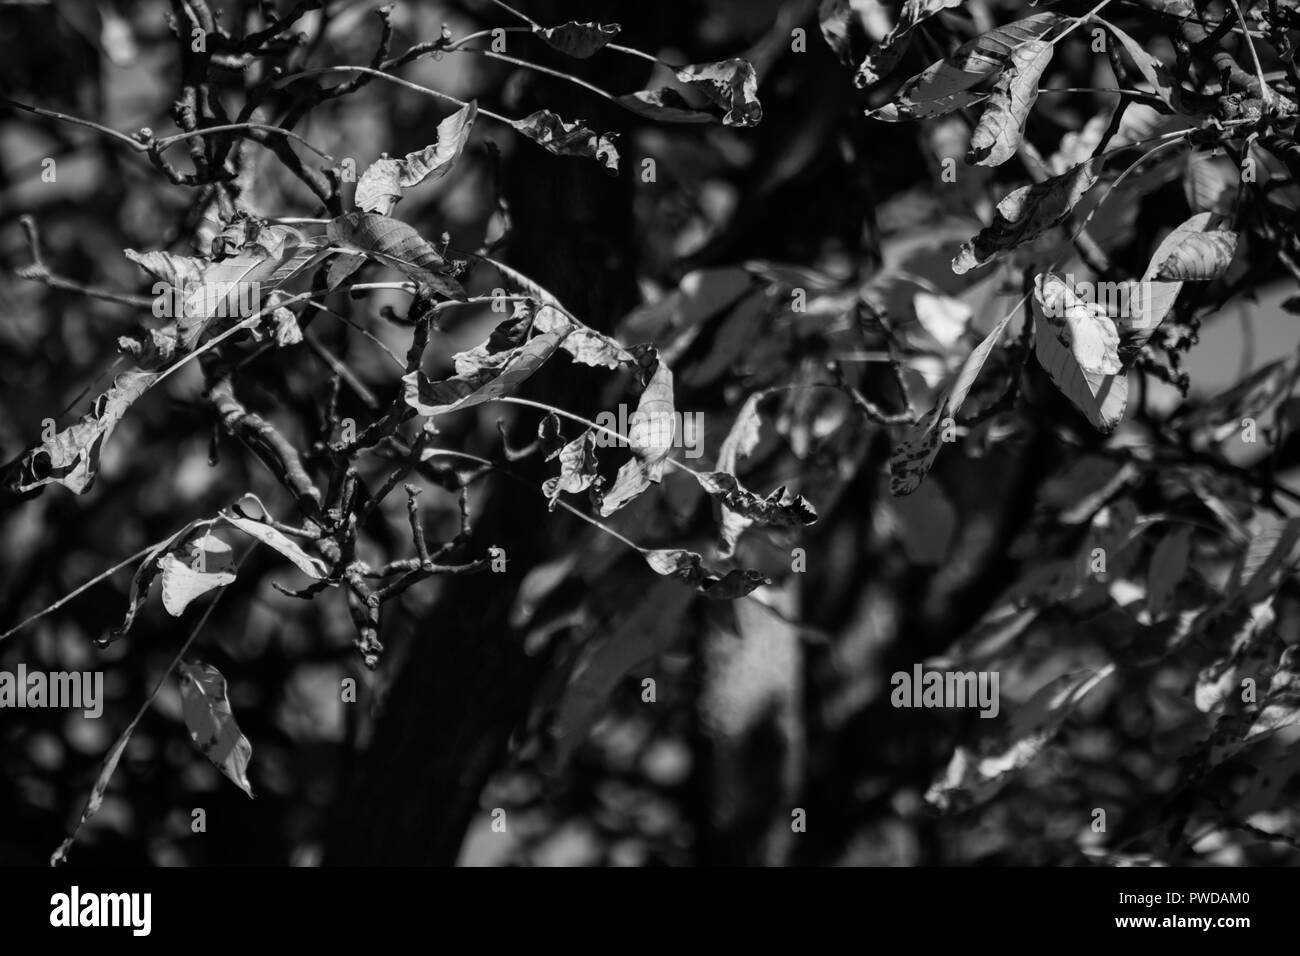 Photo of walnut tree in the middle of autumn. - Stock Image